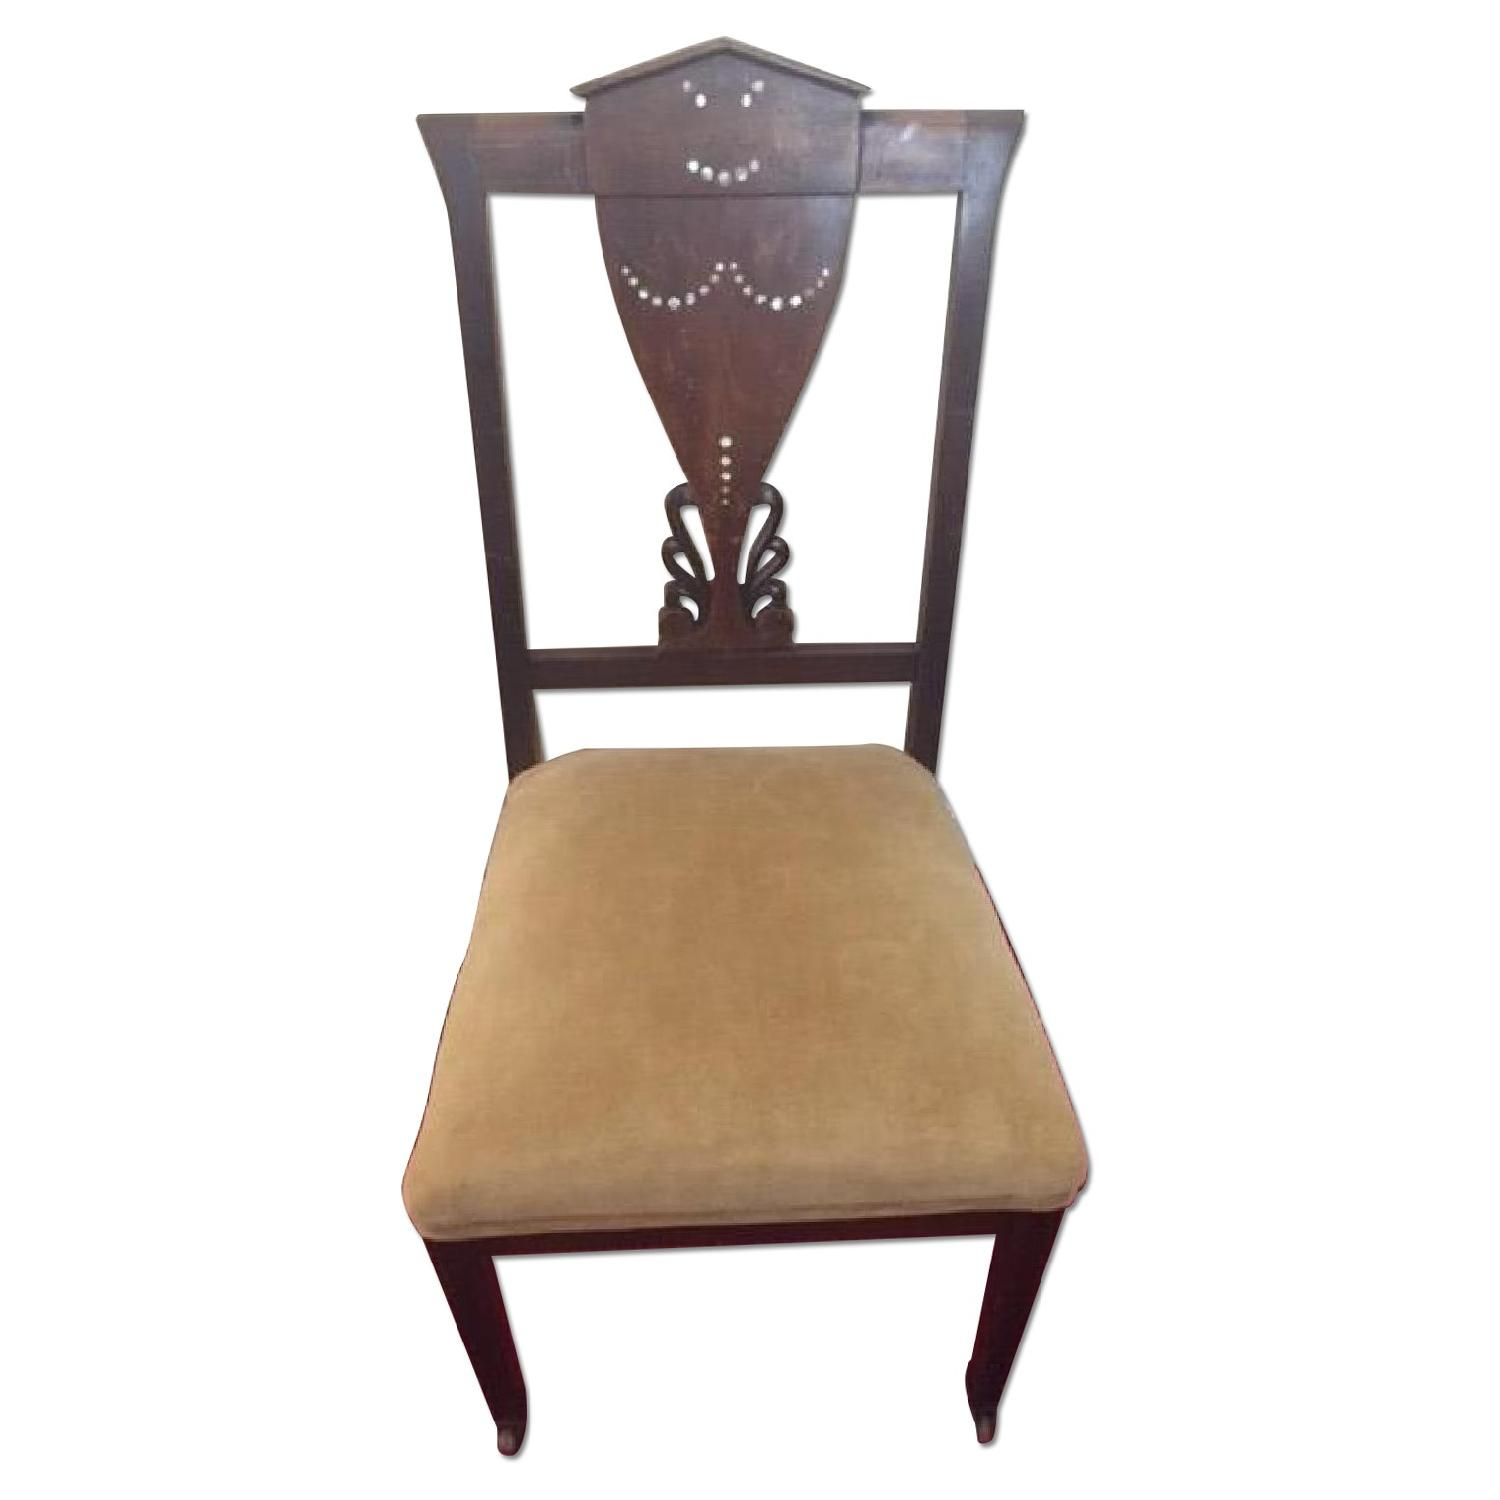 Antique Chair w/ Mother of Pearl inlay